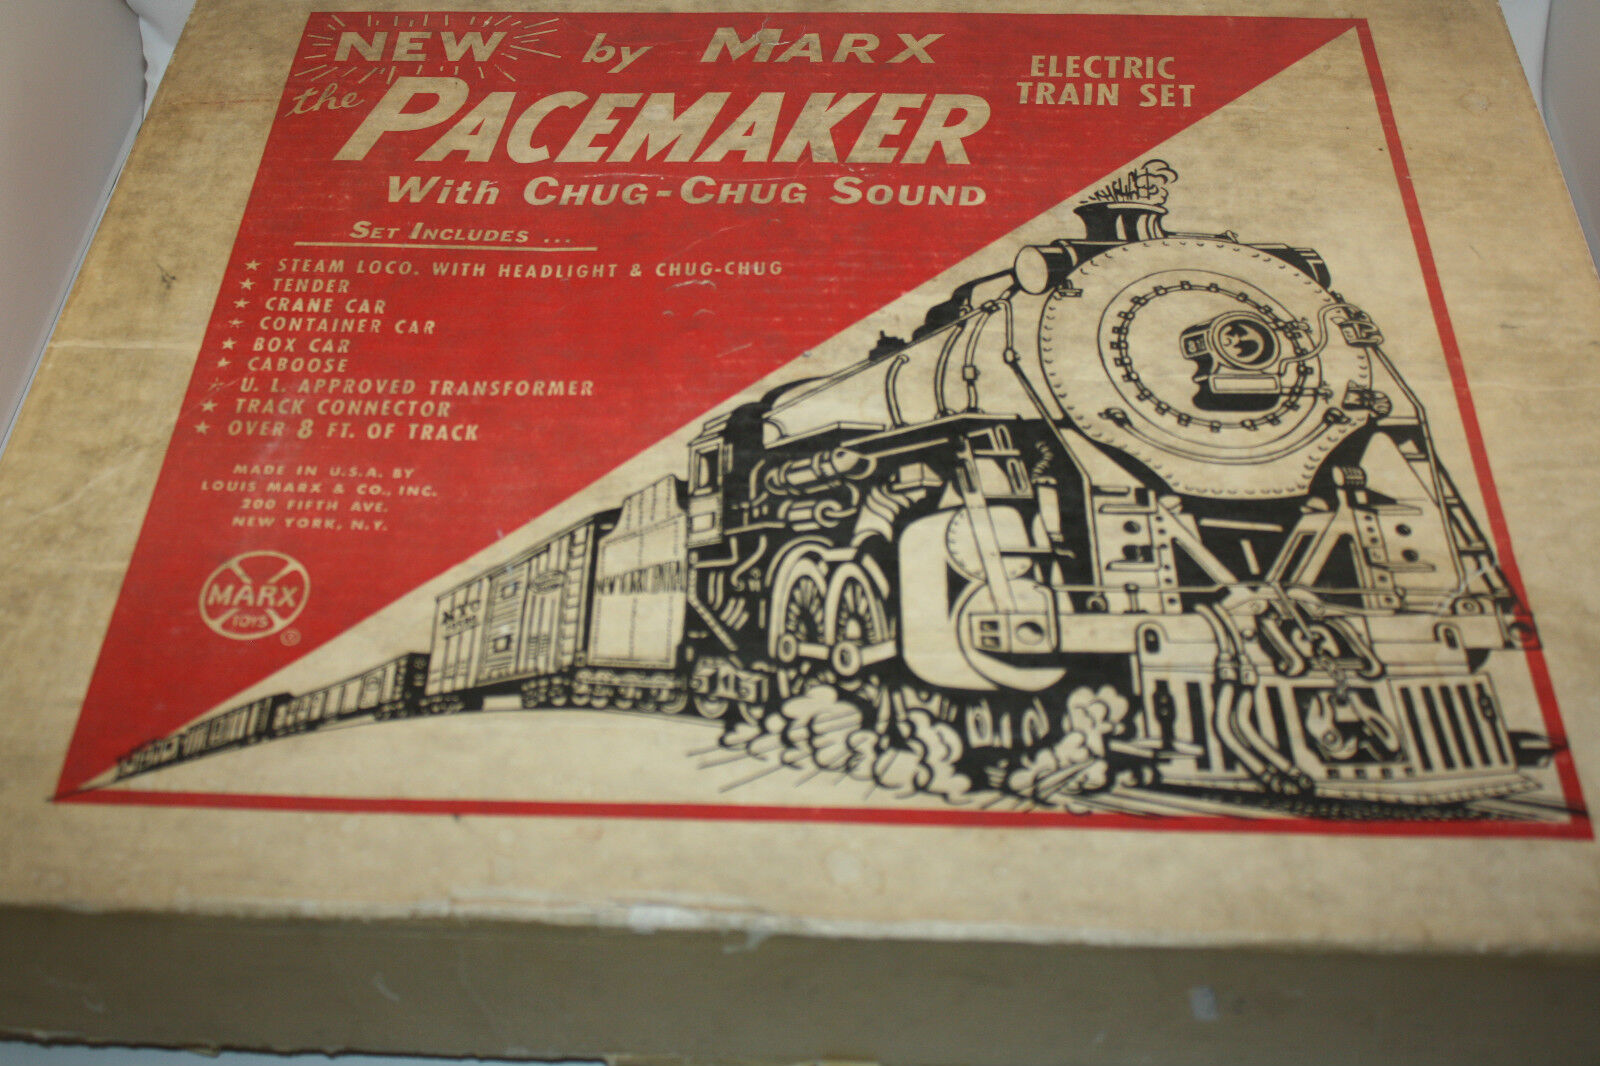 MARX THE PACEMAKER ELECTRIC TRAIN SET  1 W BOX N M CONDITION